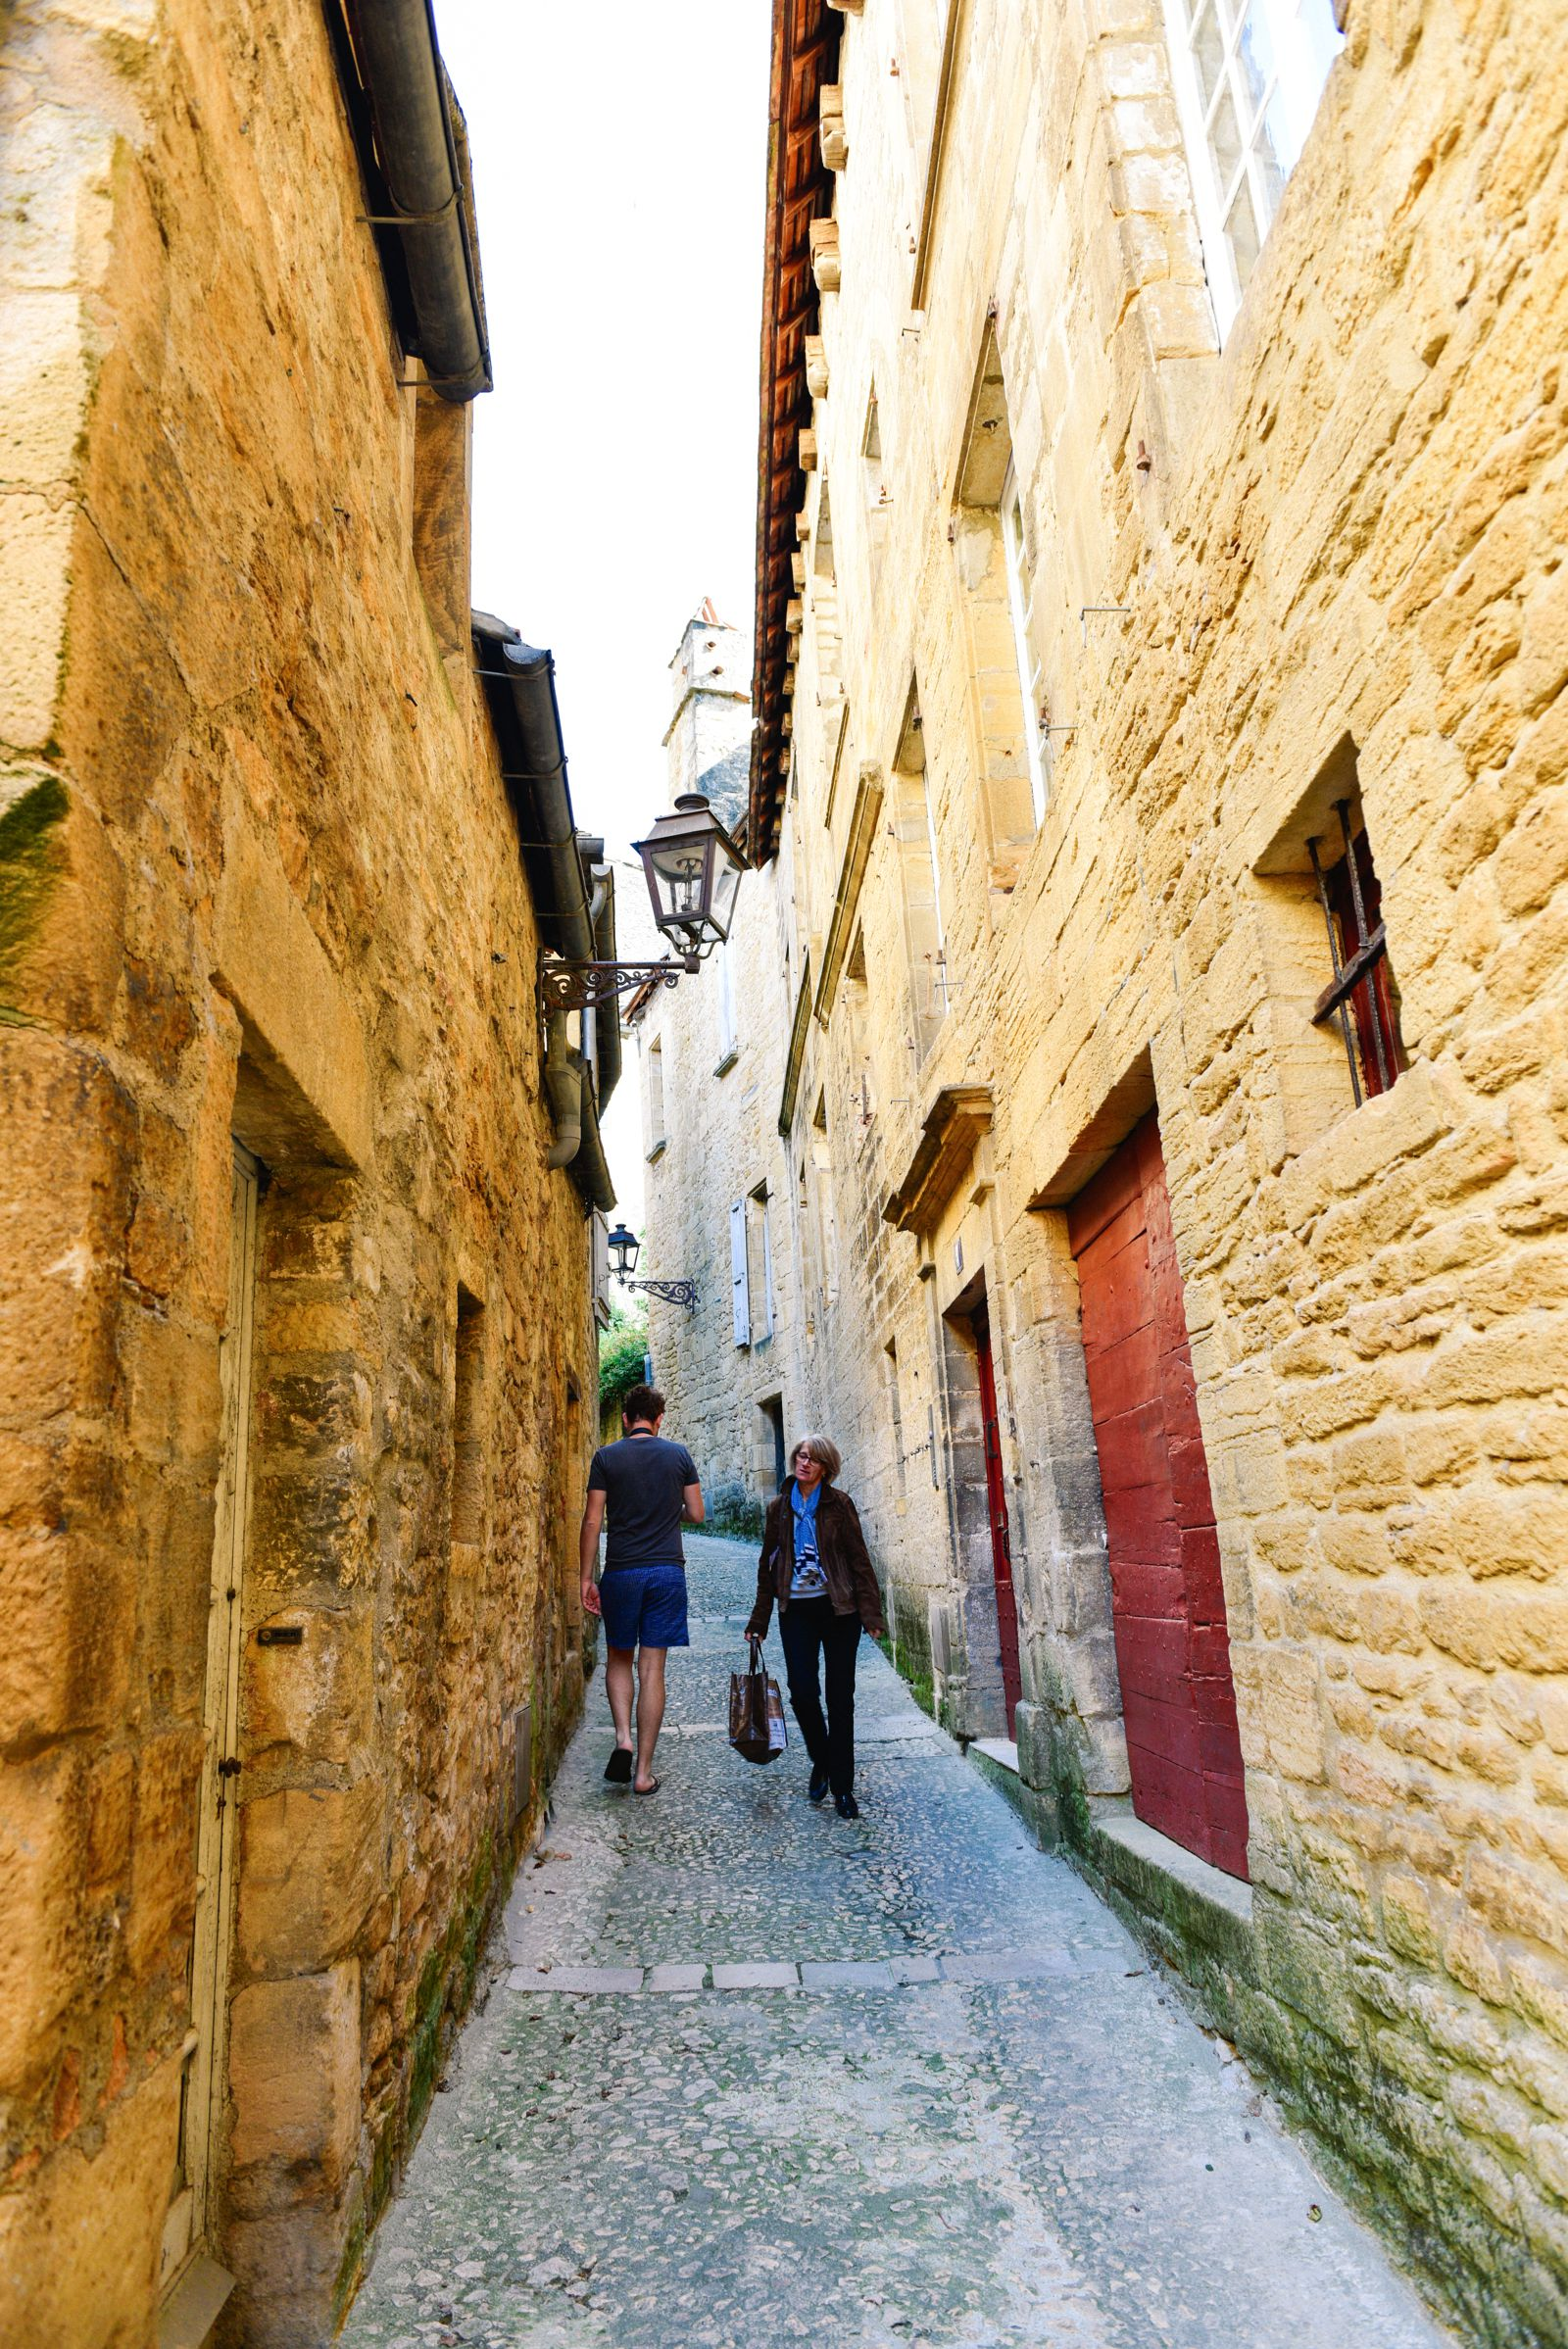 Mornings In The French City Of Sarlat And Afternoons In The Village Of Beaumont-du-Périgord... (4)